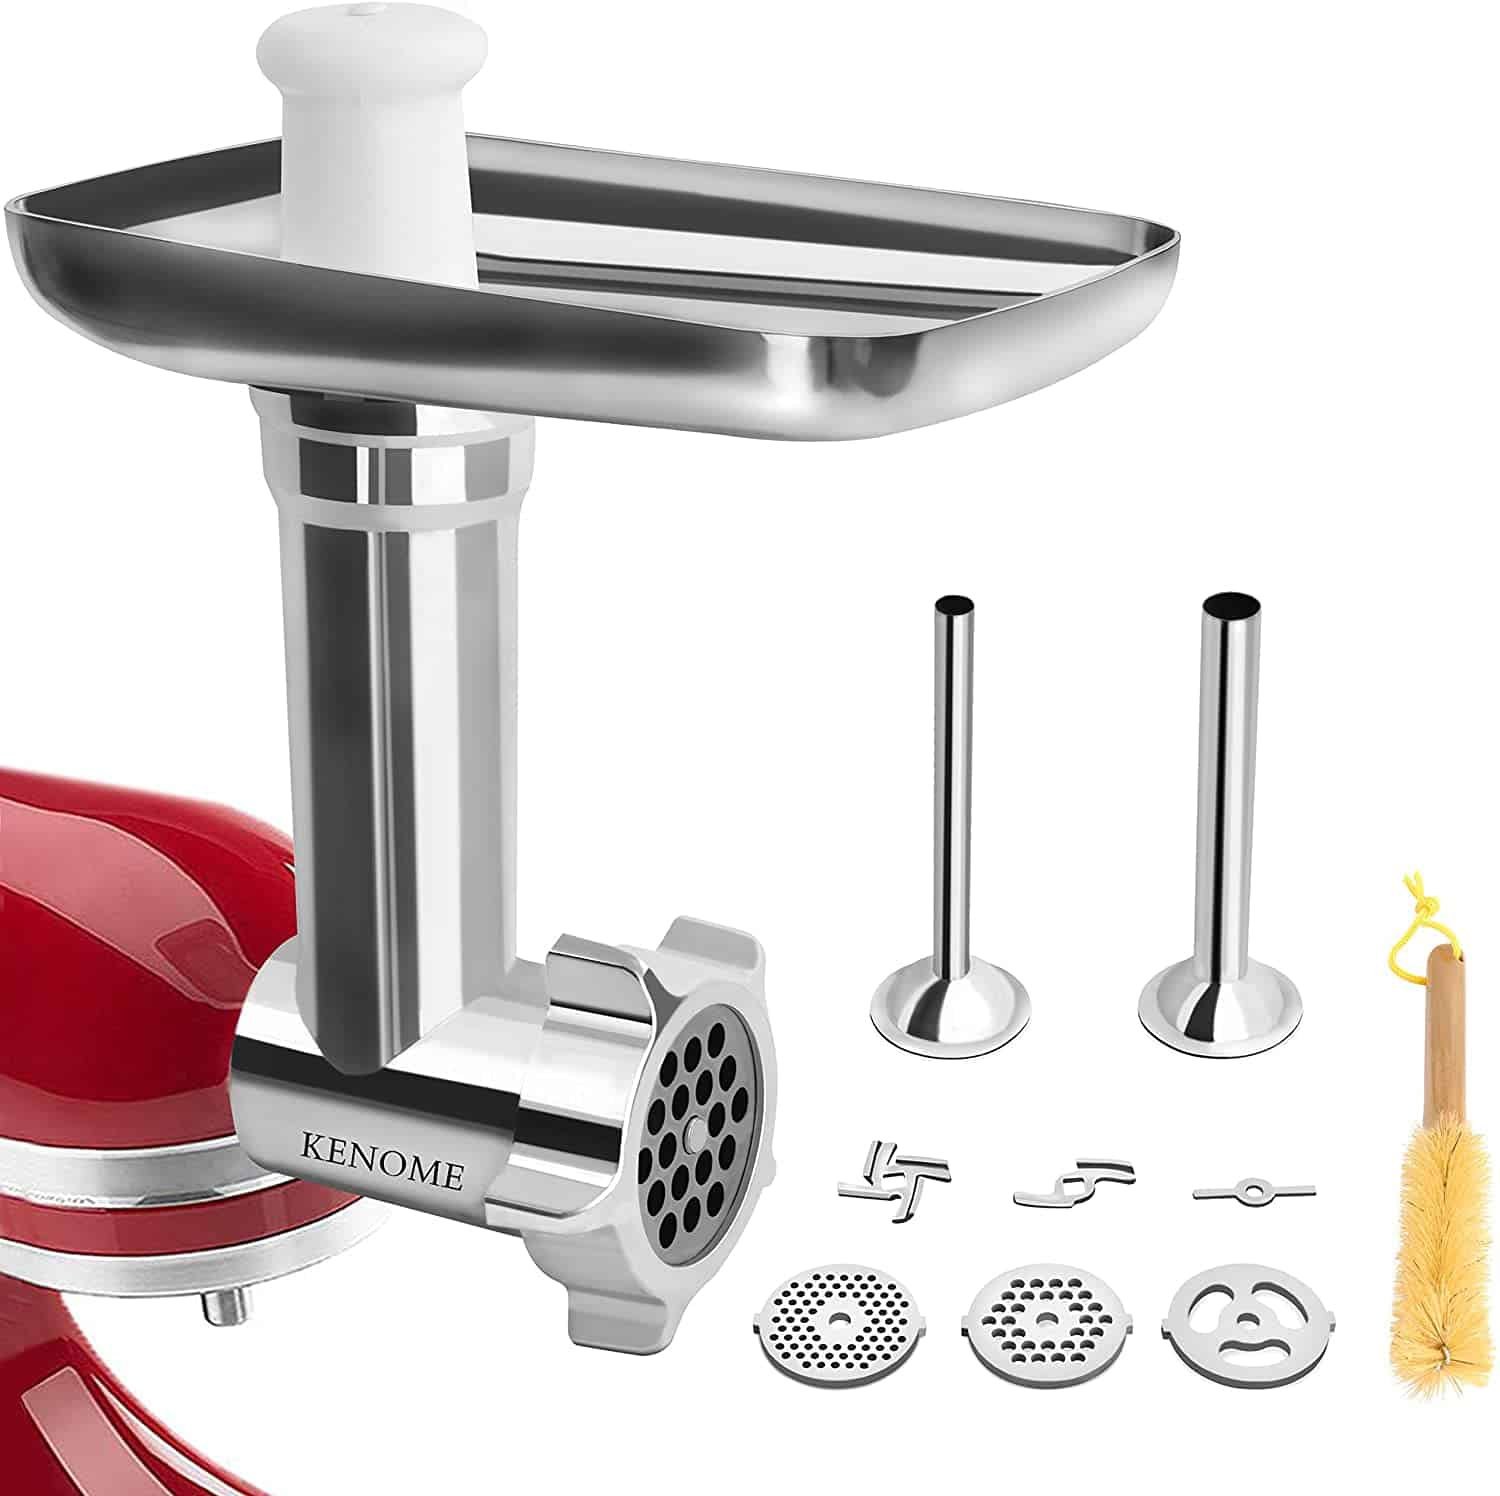 KENOME Cuisinart Stand Mixer Meat Grinder Attachment